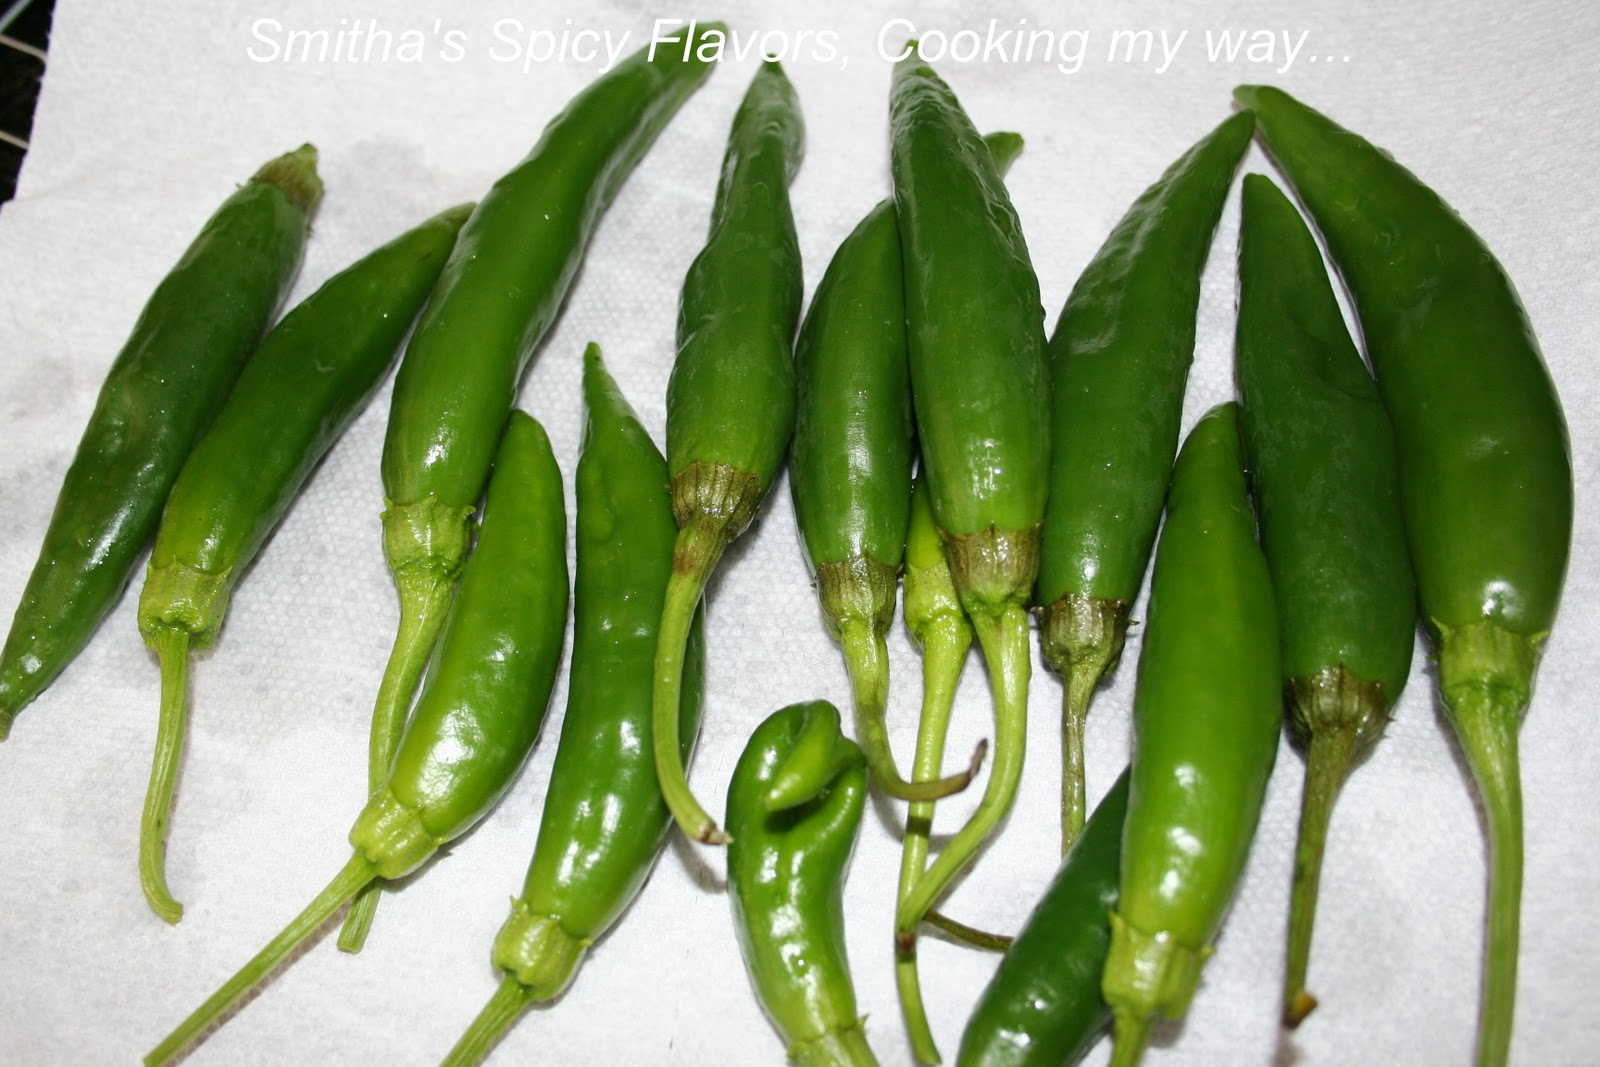 Spicy Green pepper / chilly stir fry....yet not spicy ...